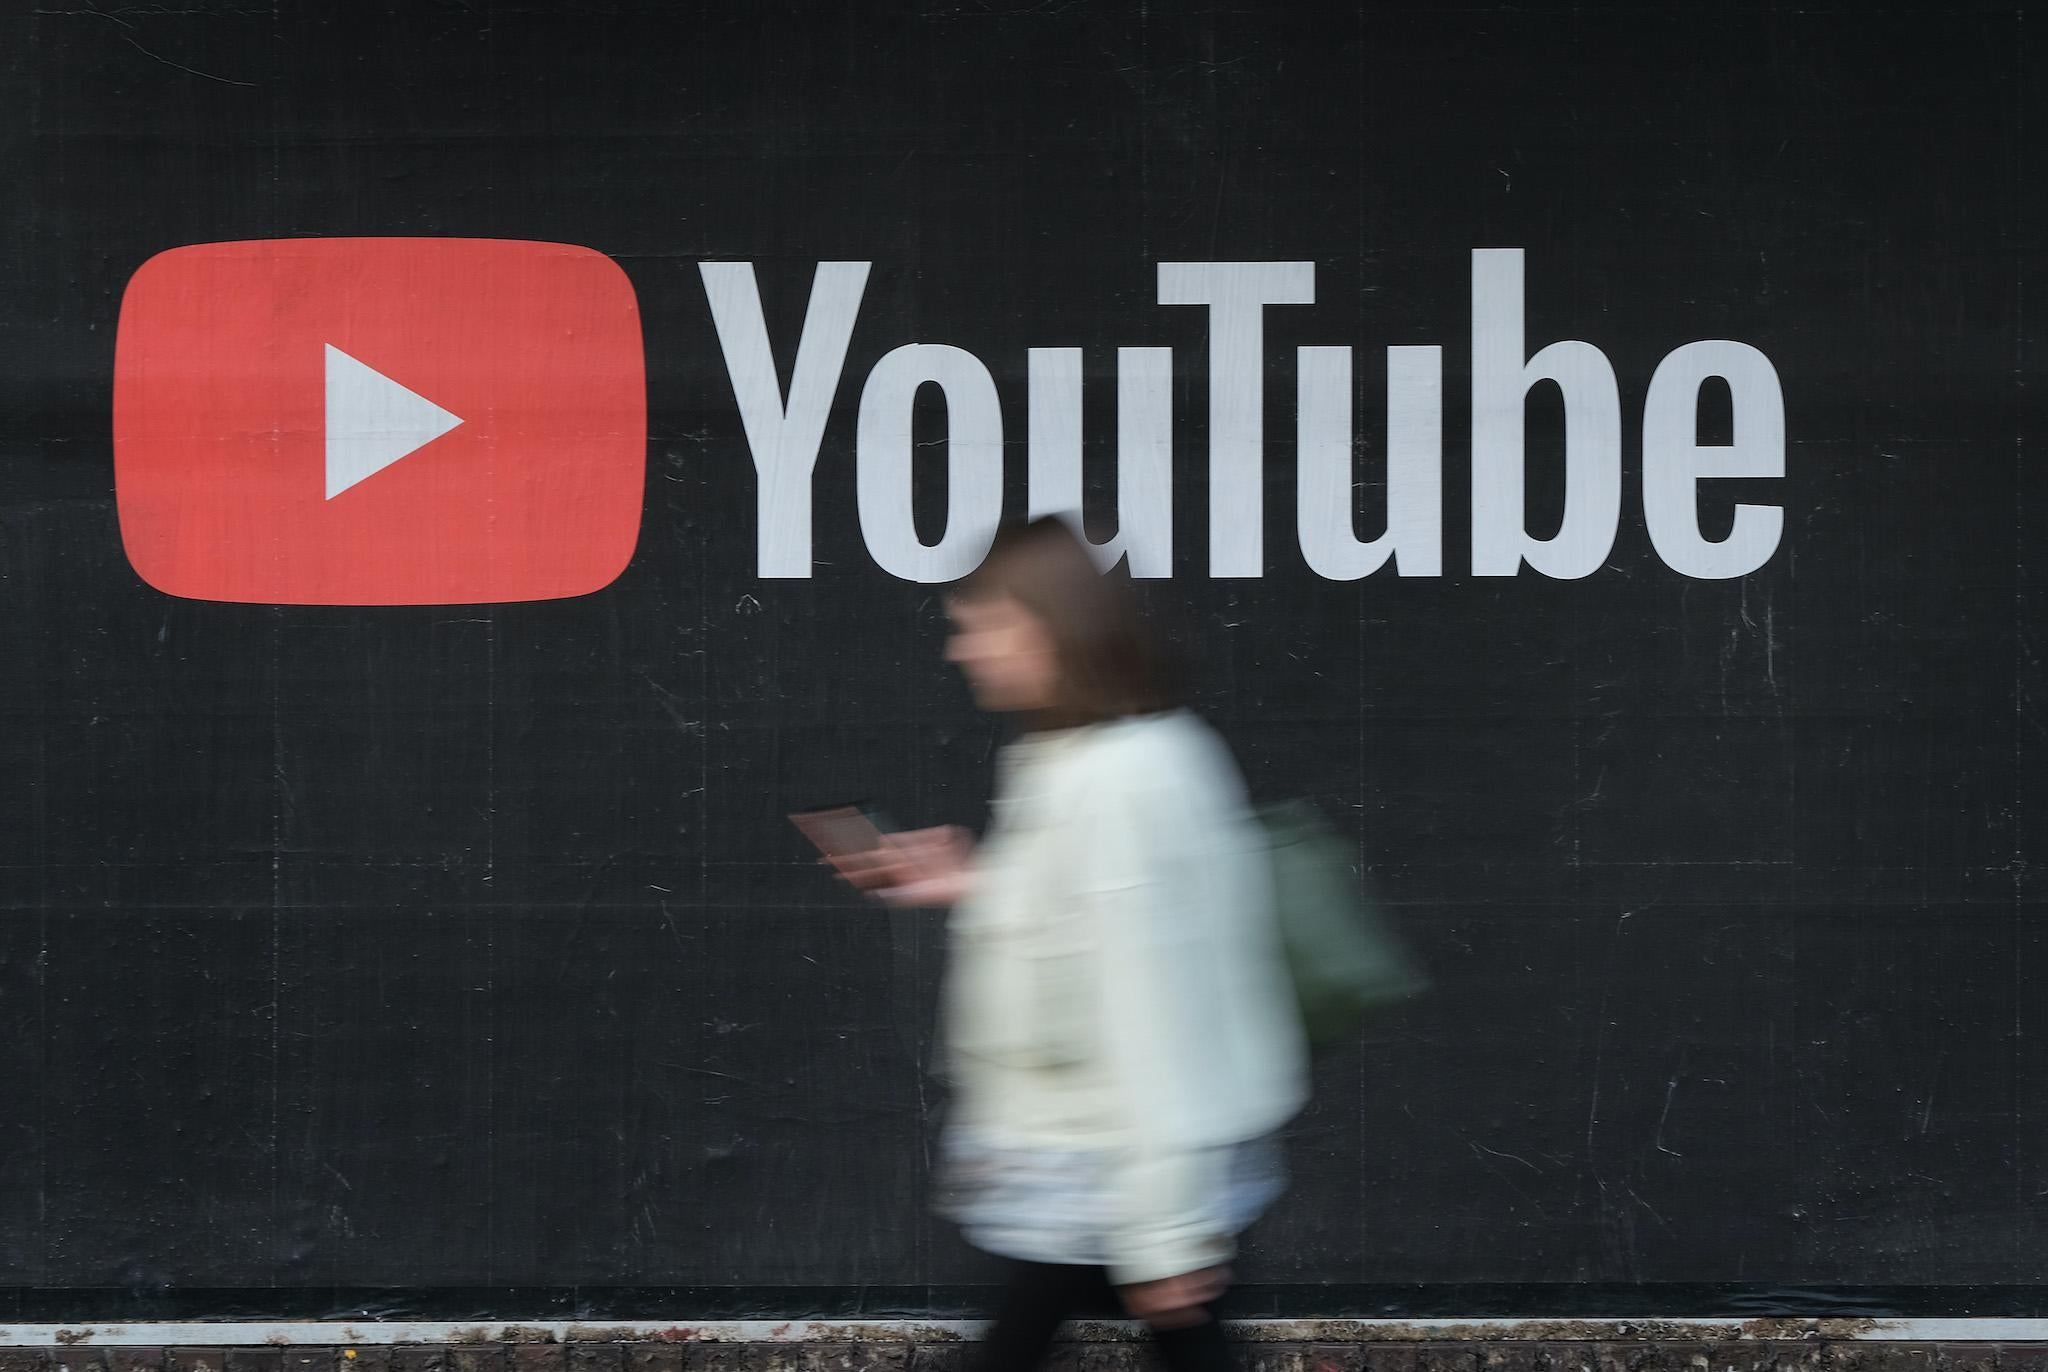 The replies you see on YouTube might be written by a Google AI